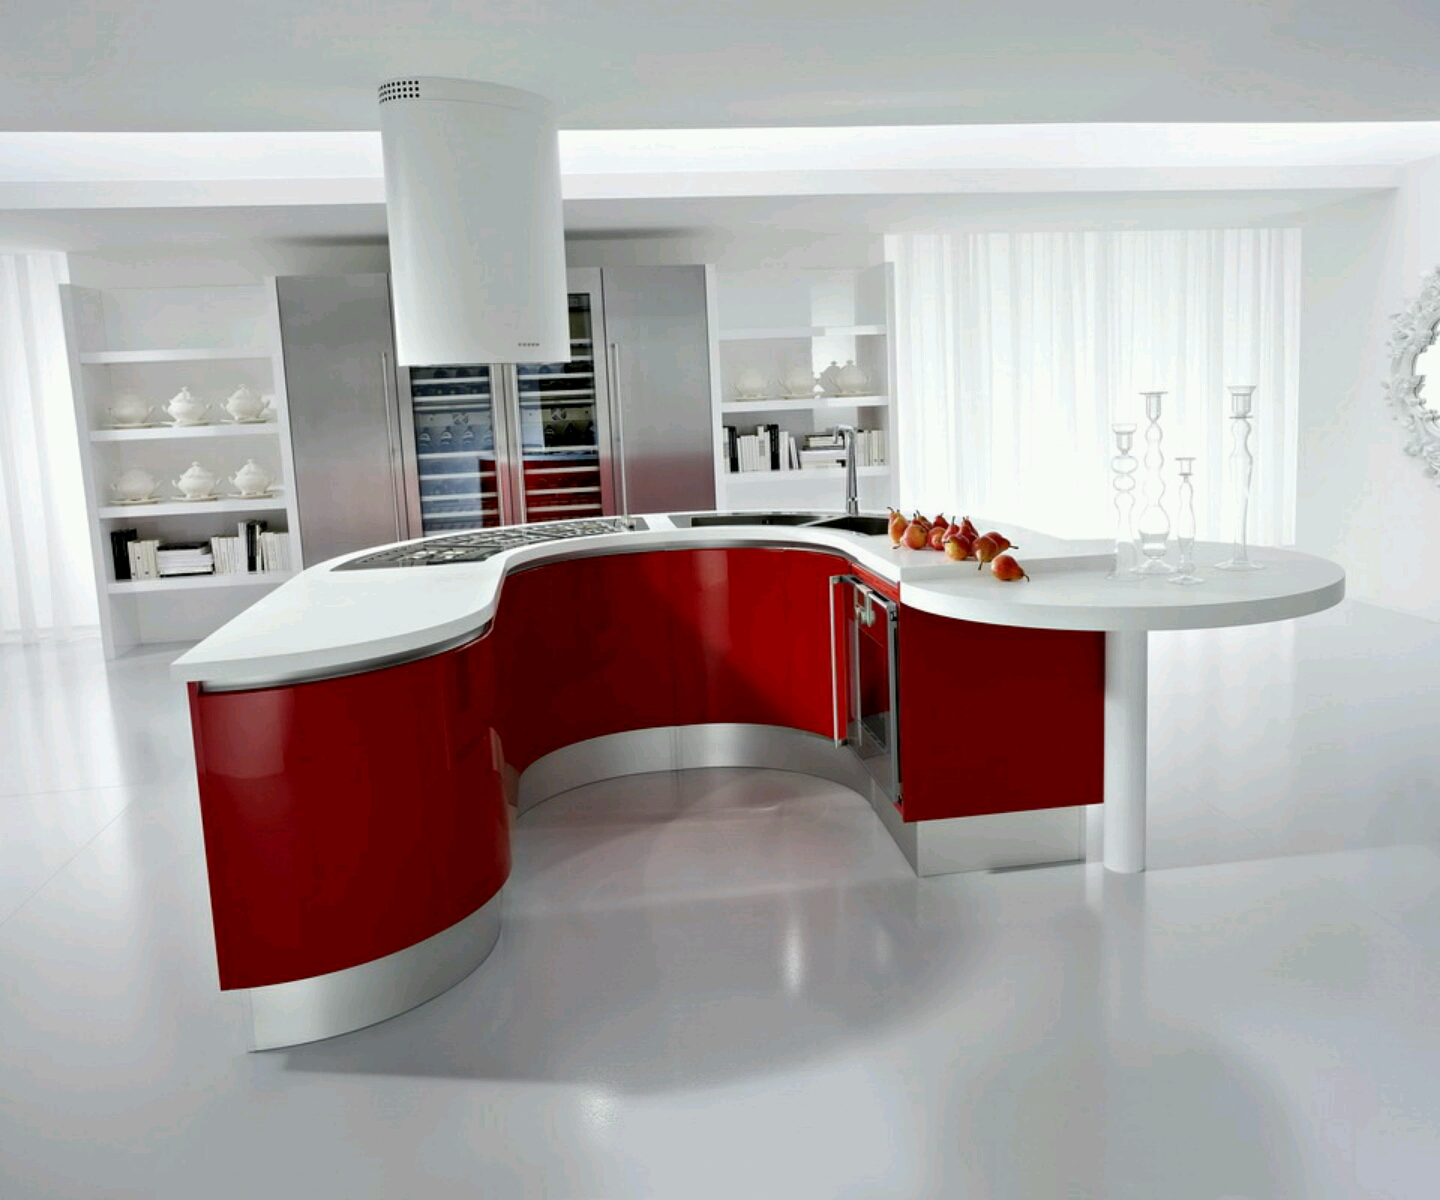 Modern kitchen cabinets designs ideas furniture gallery for Contemporary kitchen